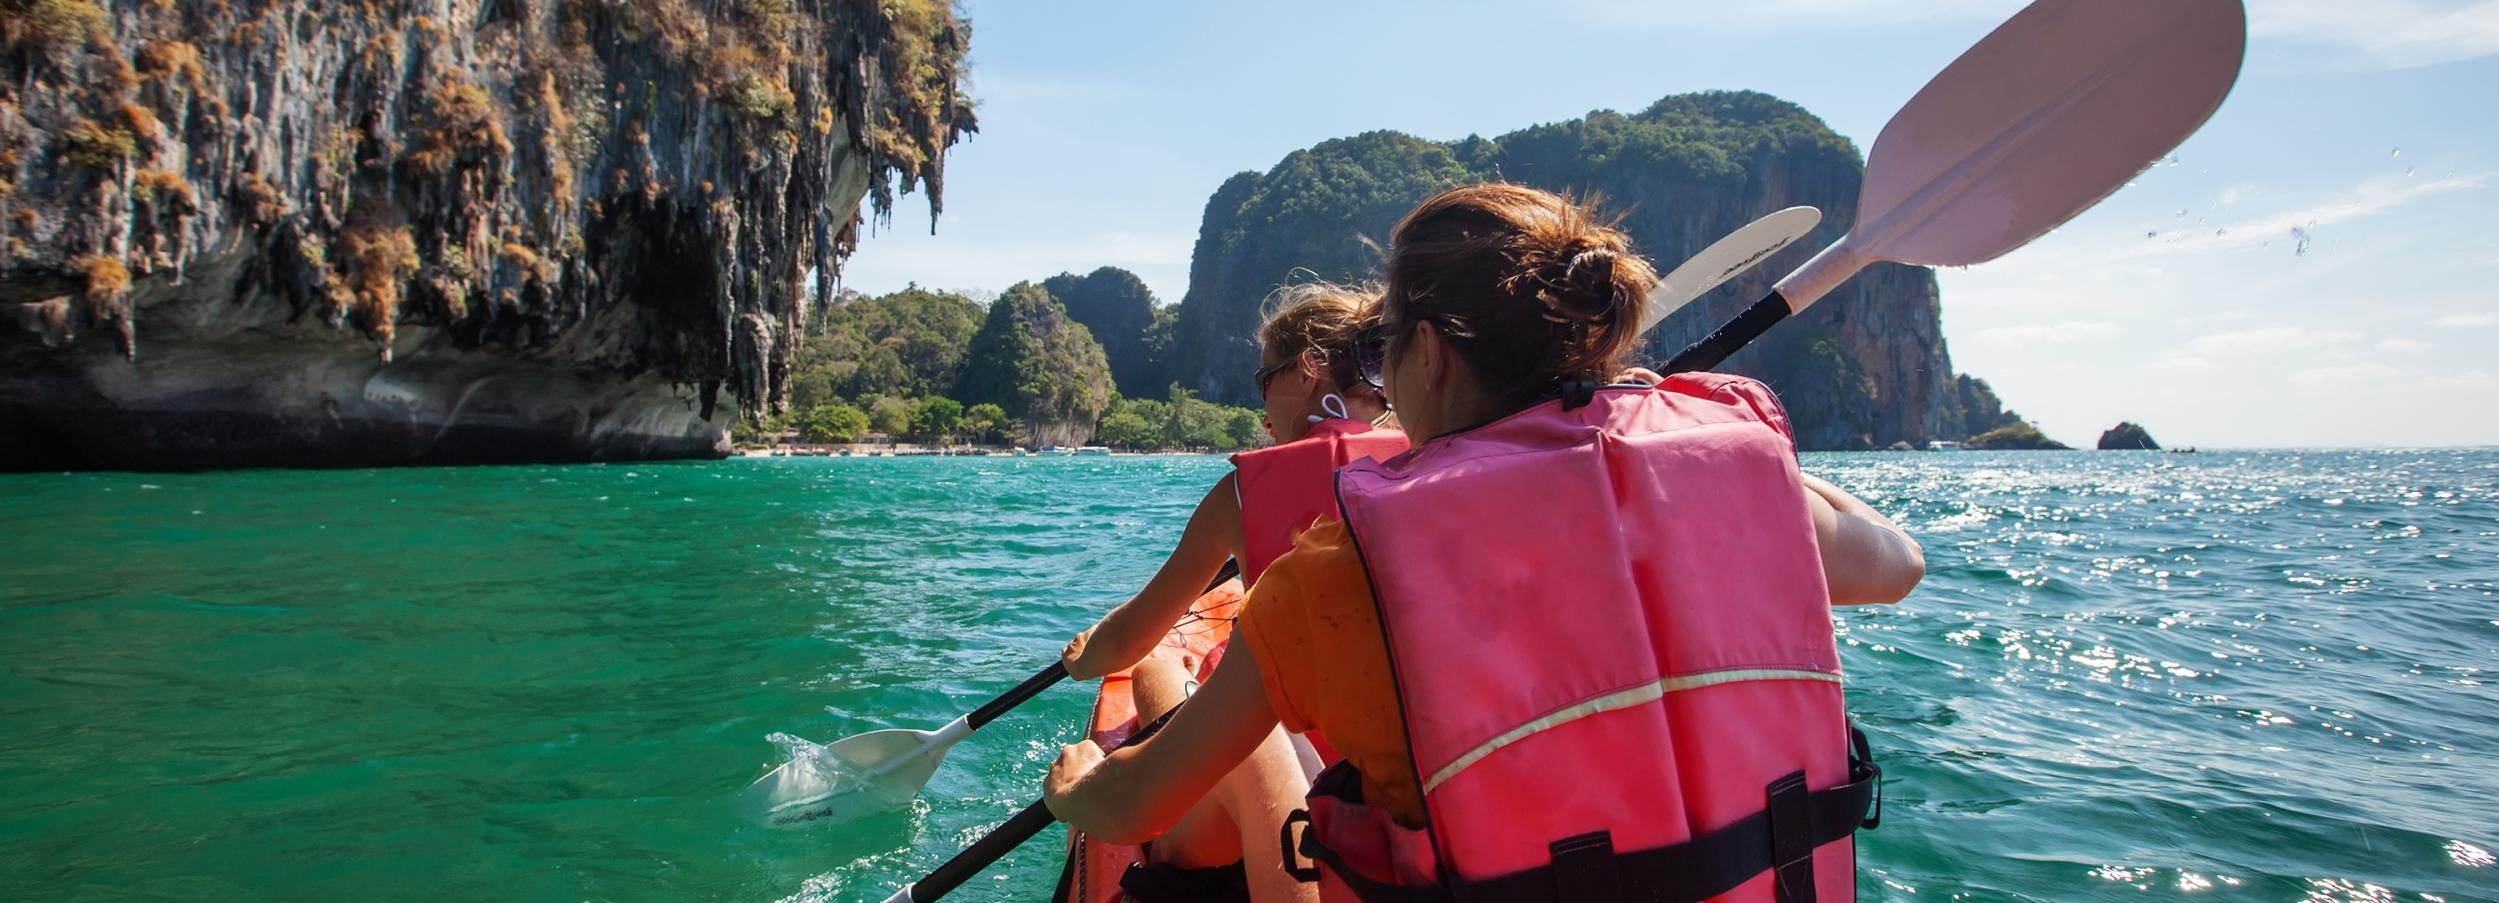 From Phuket: Soi Dog Foundation and Islands Tour